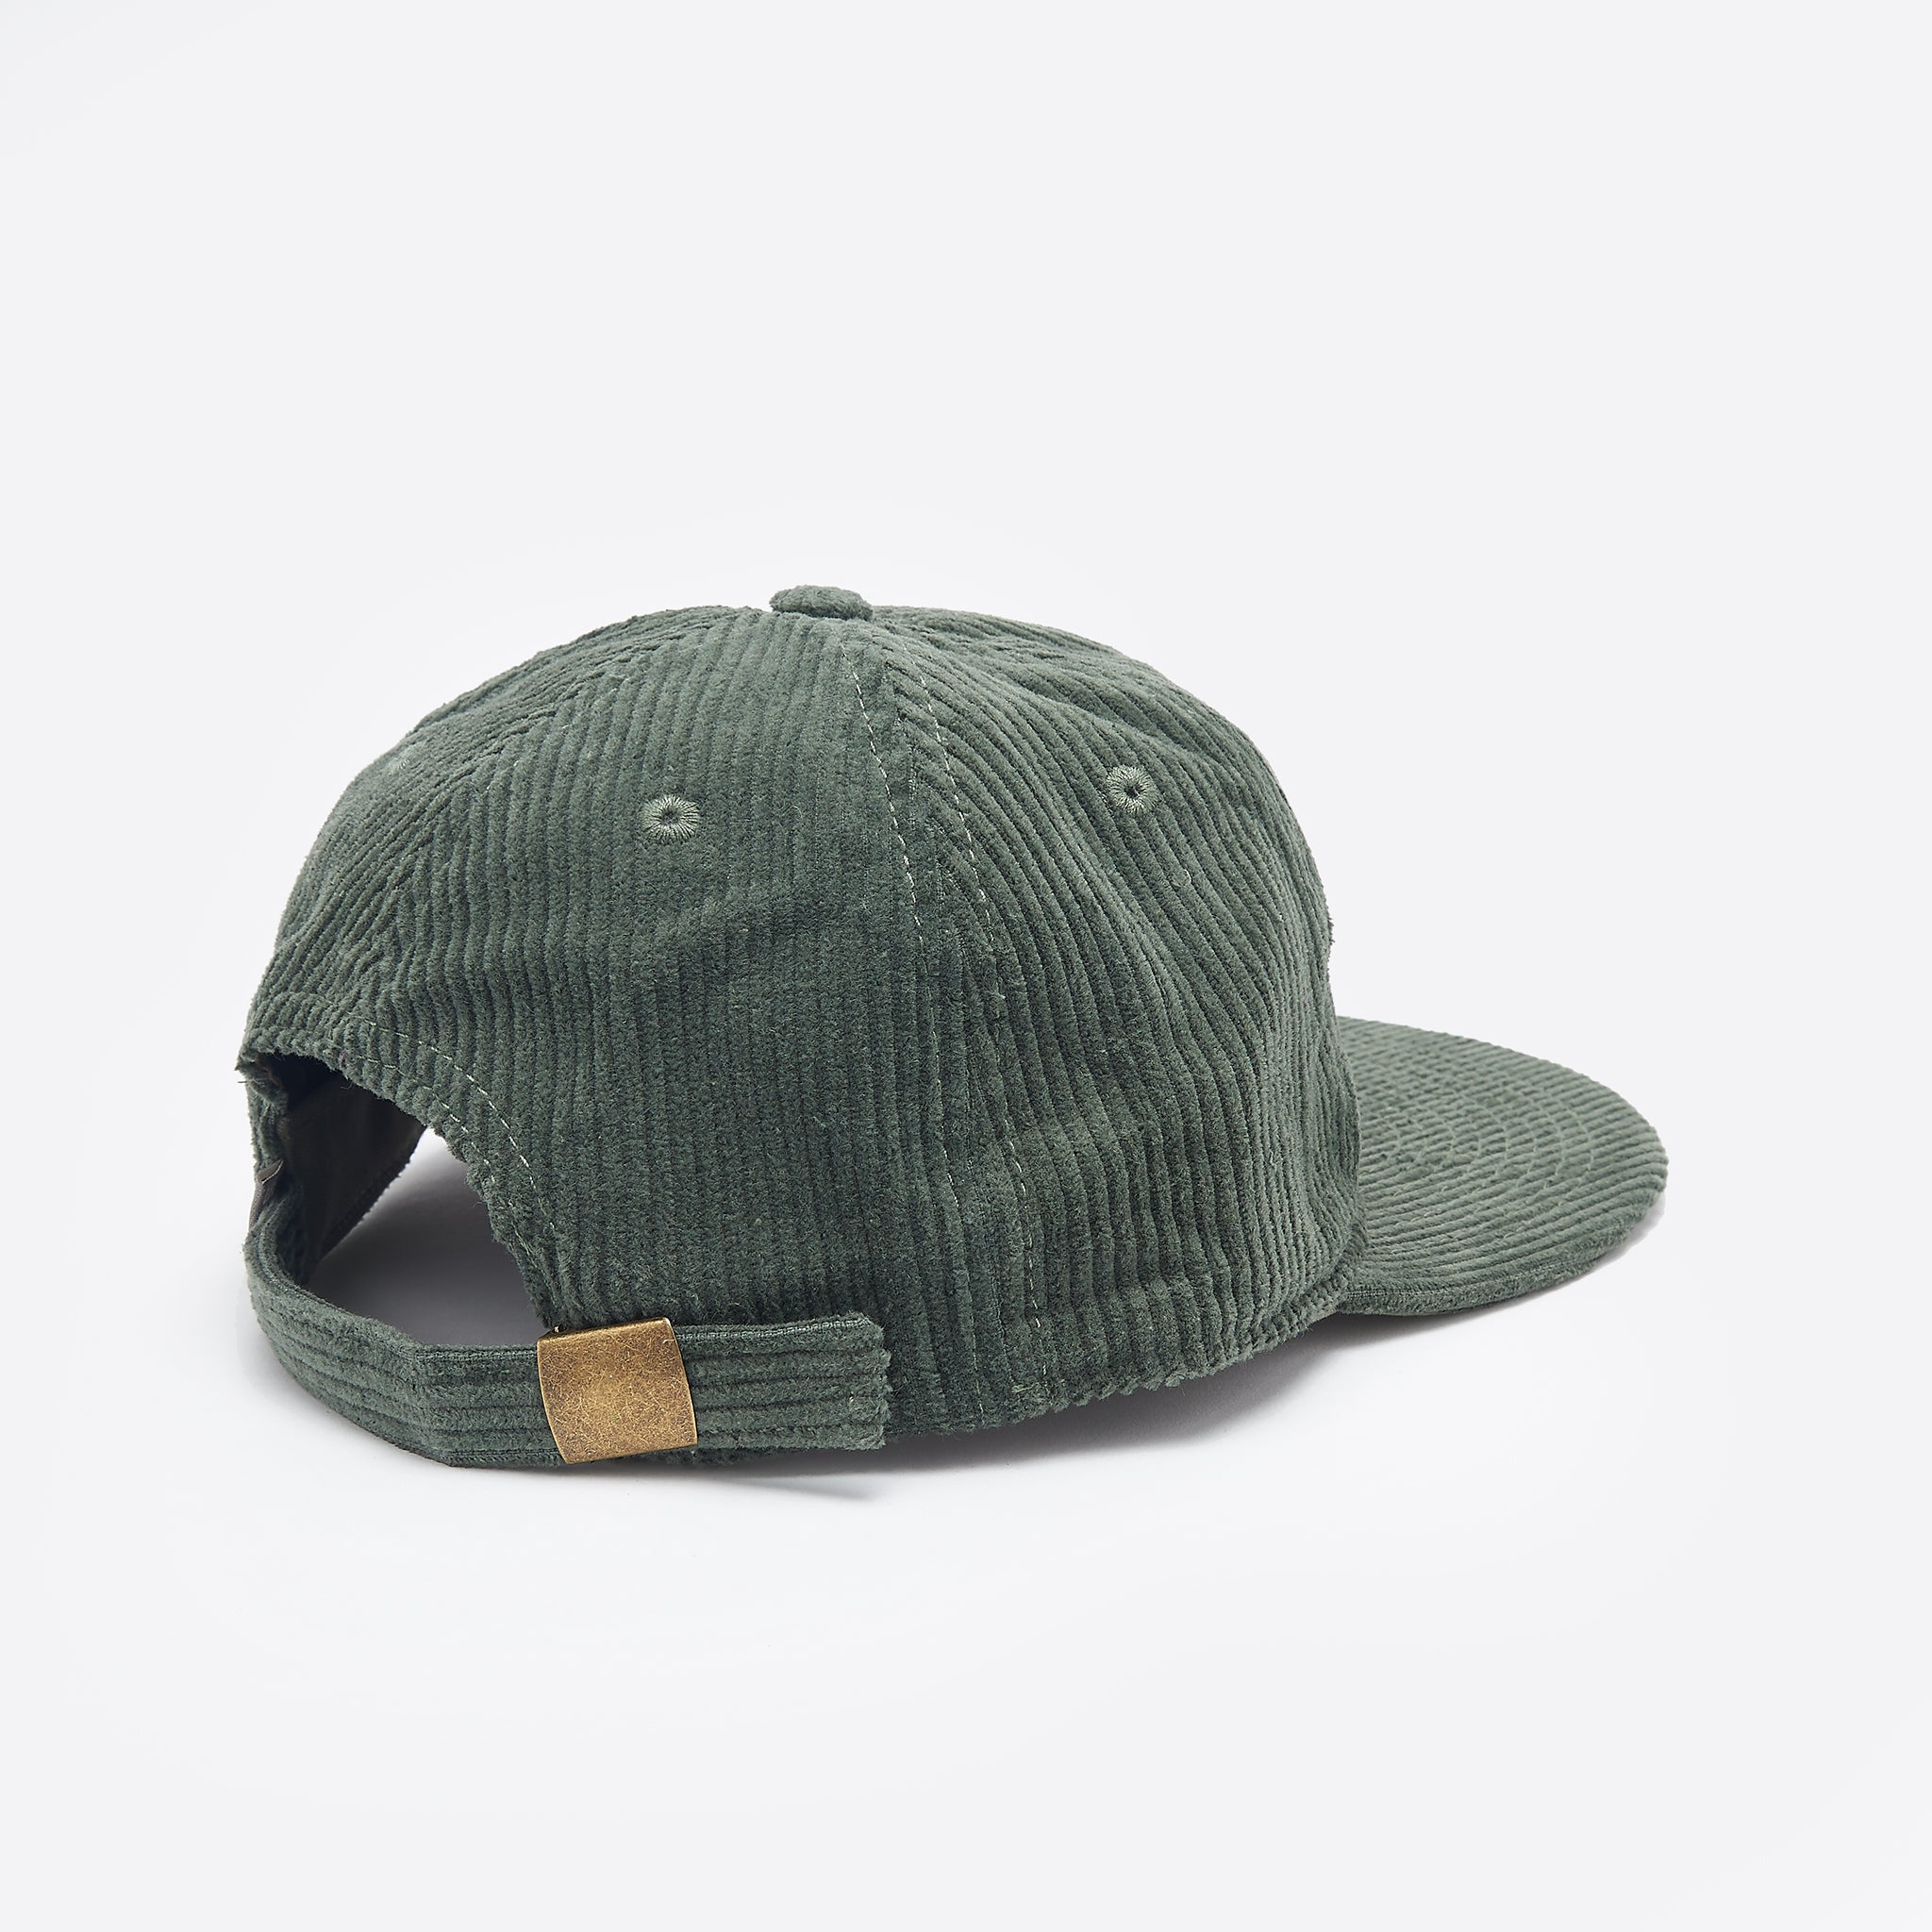 Satta Cord Cap in Emerald Green